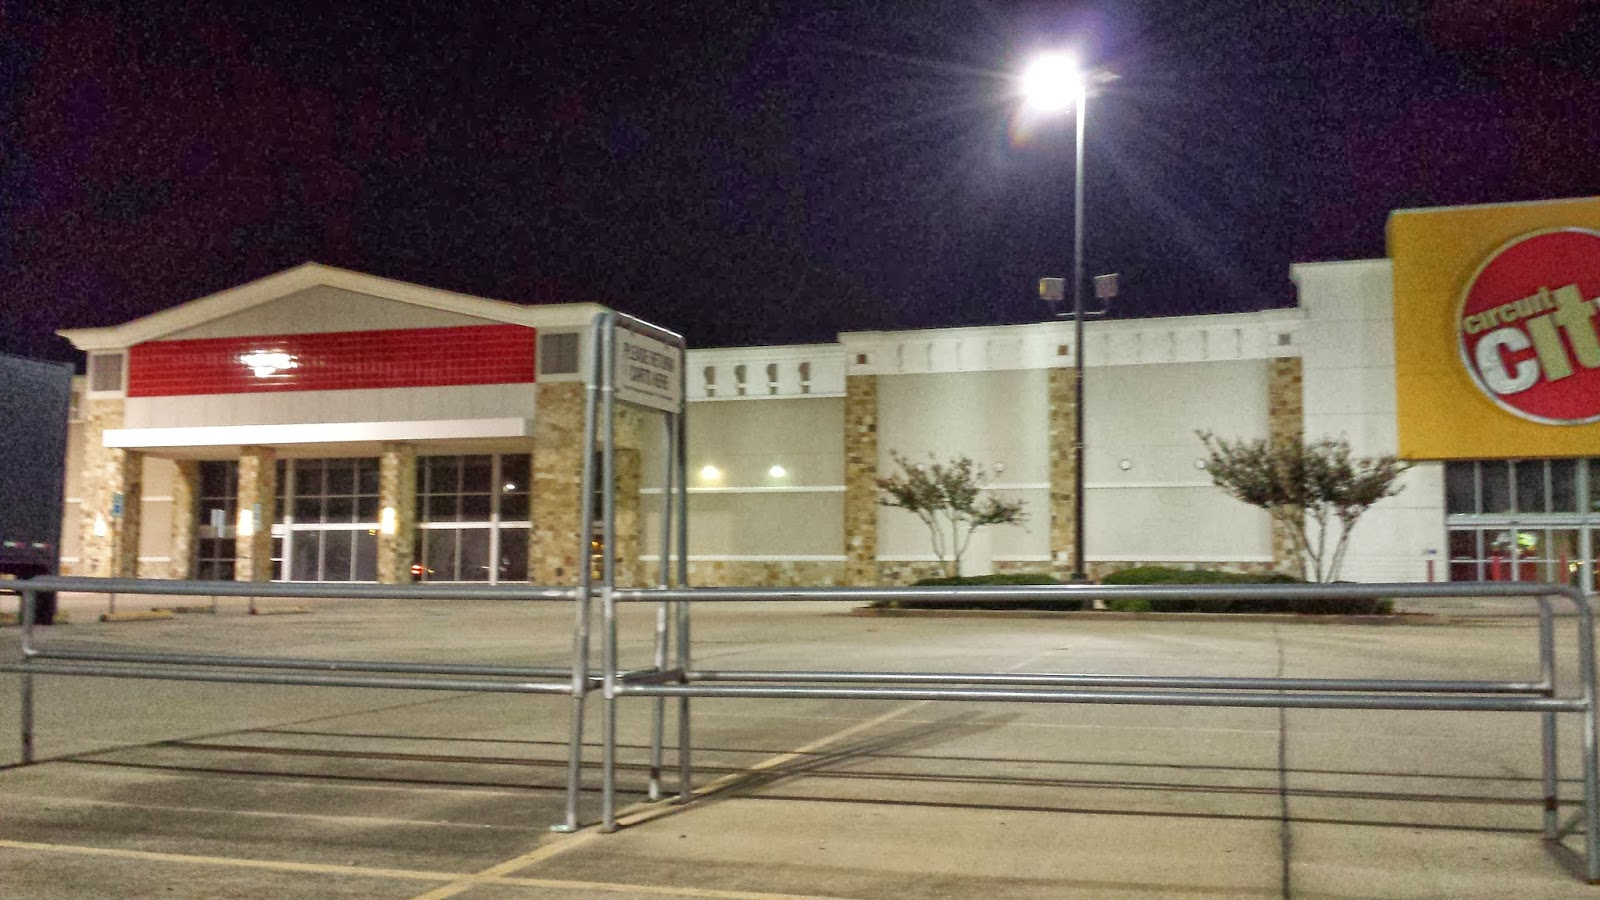 The Former Linens And Things Circuit City Are Now Combined Will Become A Conns Store